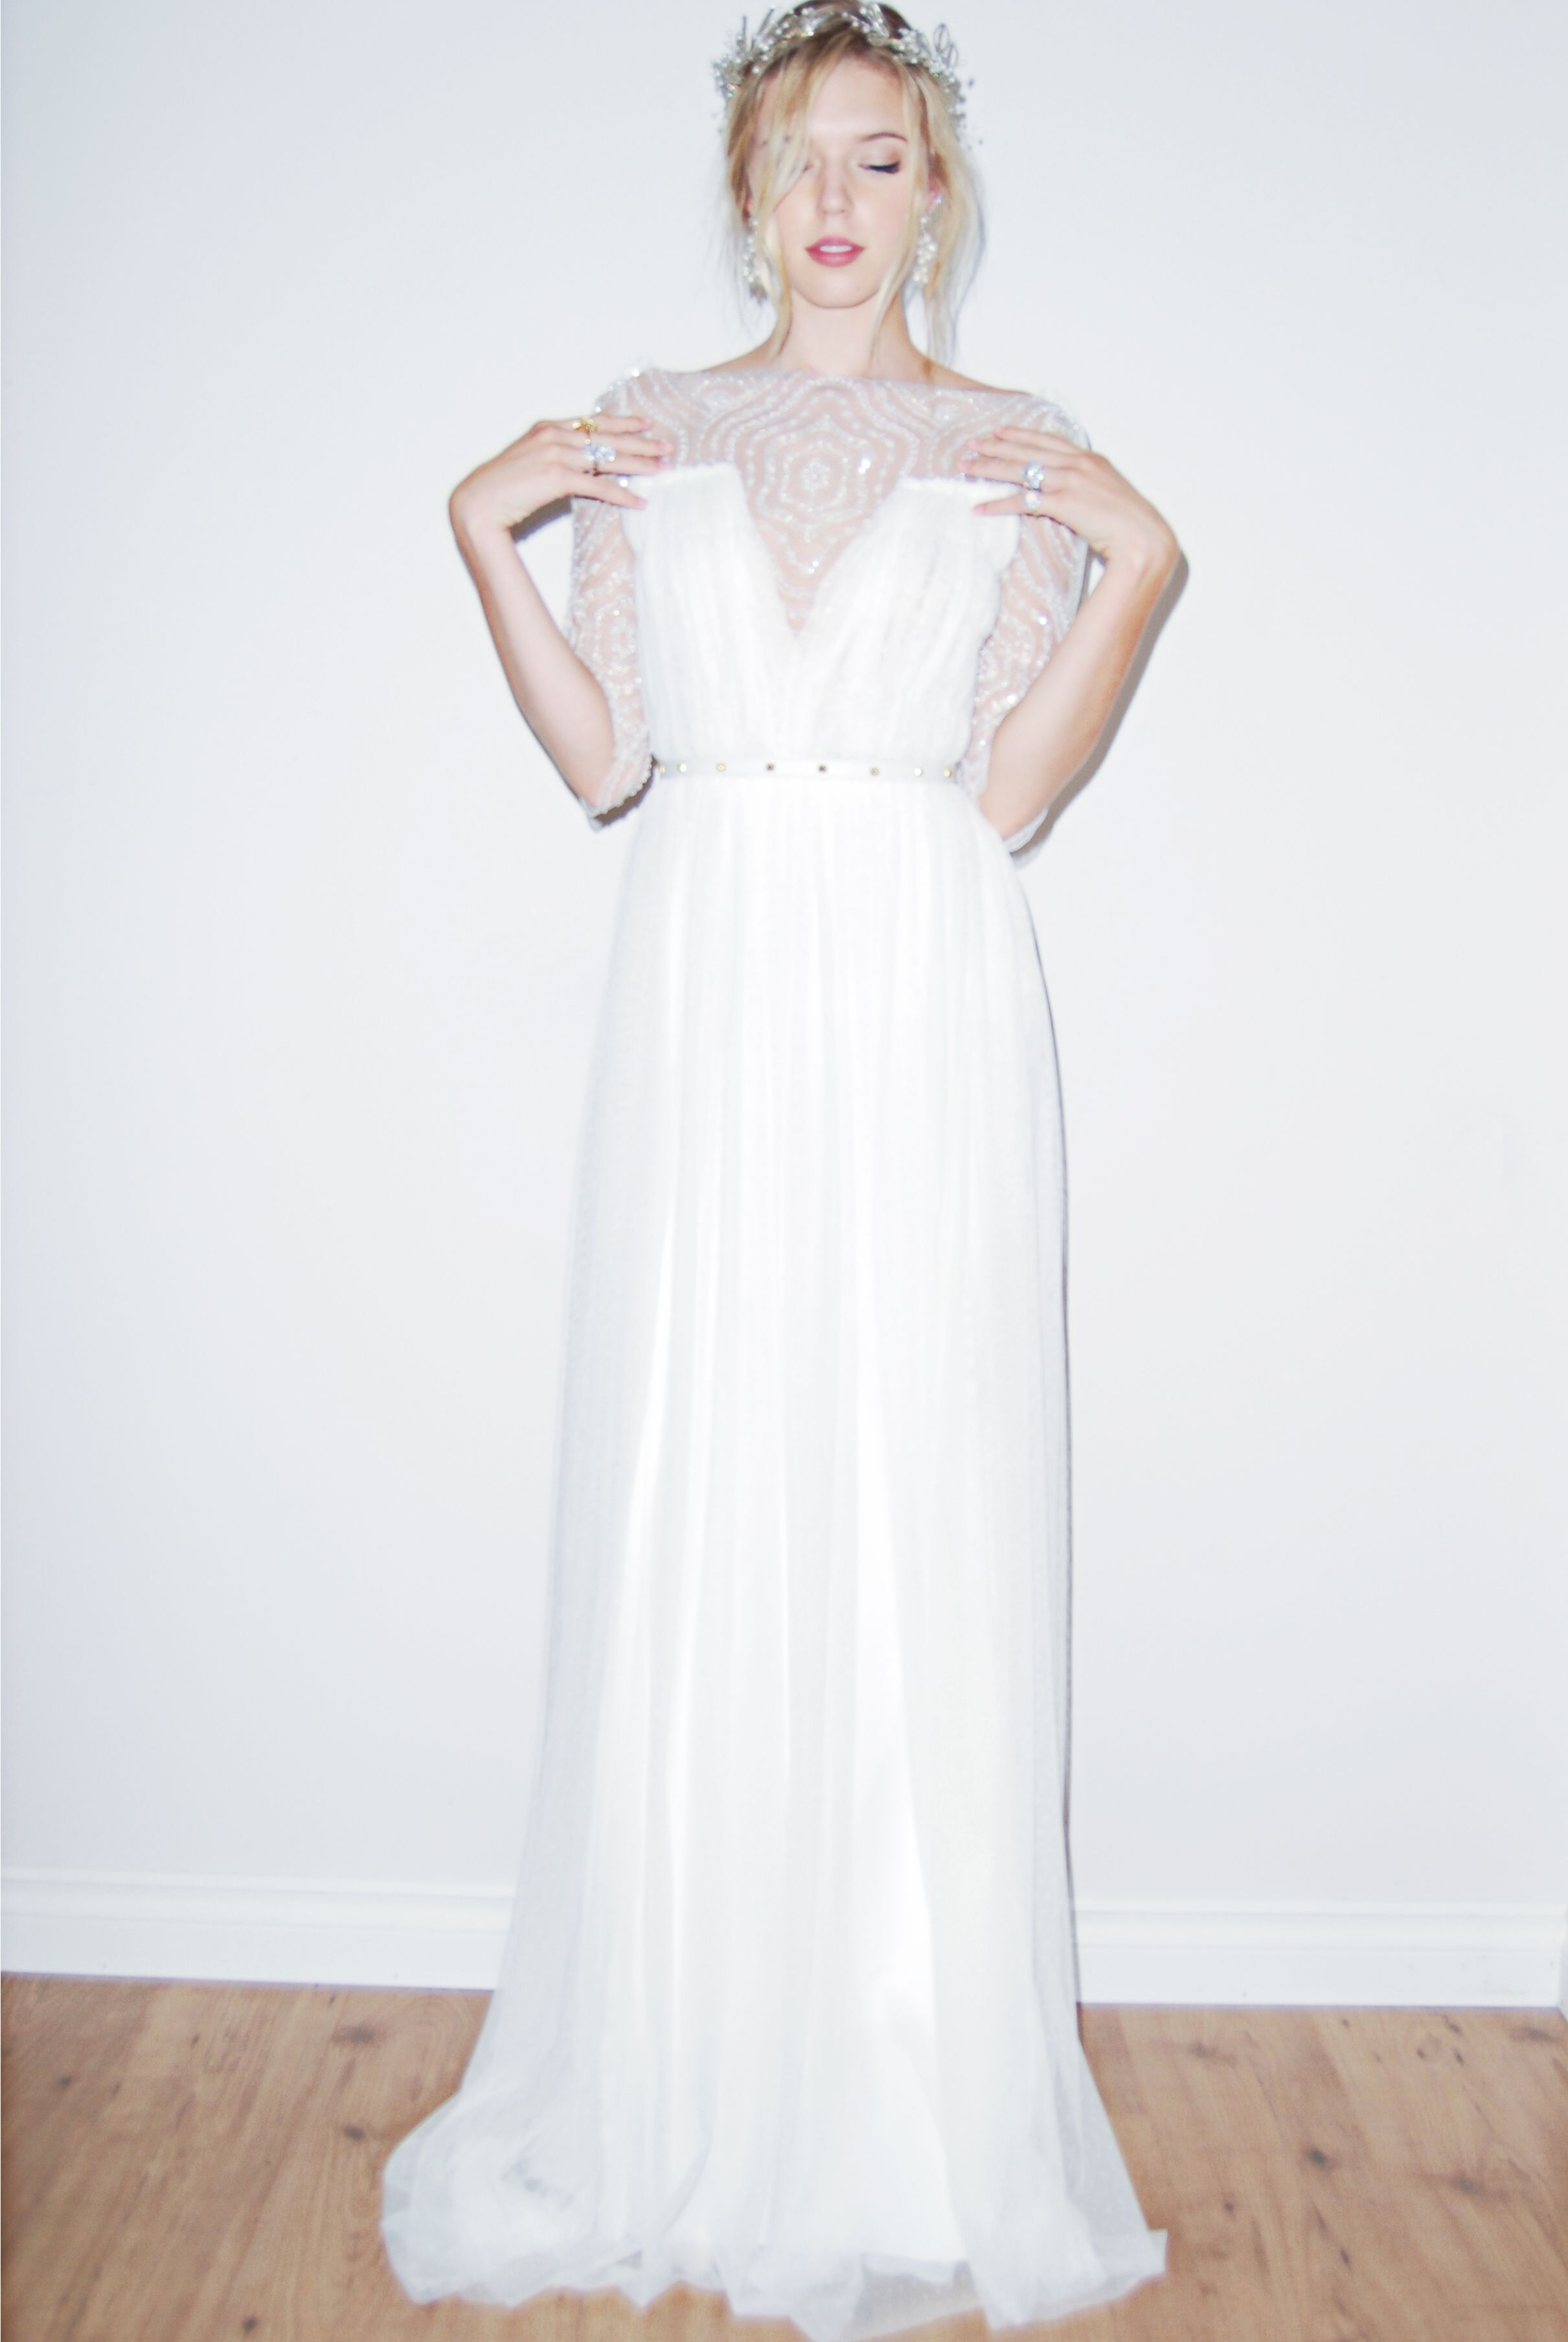 Love Profusion Dress 2016 Sunjin Lee Bridal Collection Now Available At A Be Bridal Shop In Dallas Tx Book An Appointment Today Stunning Wedding Dresses Wedding Dresses Bridal